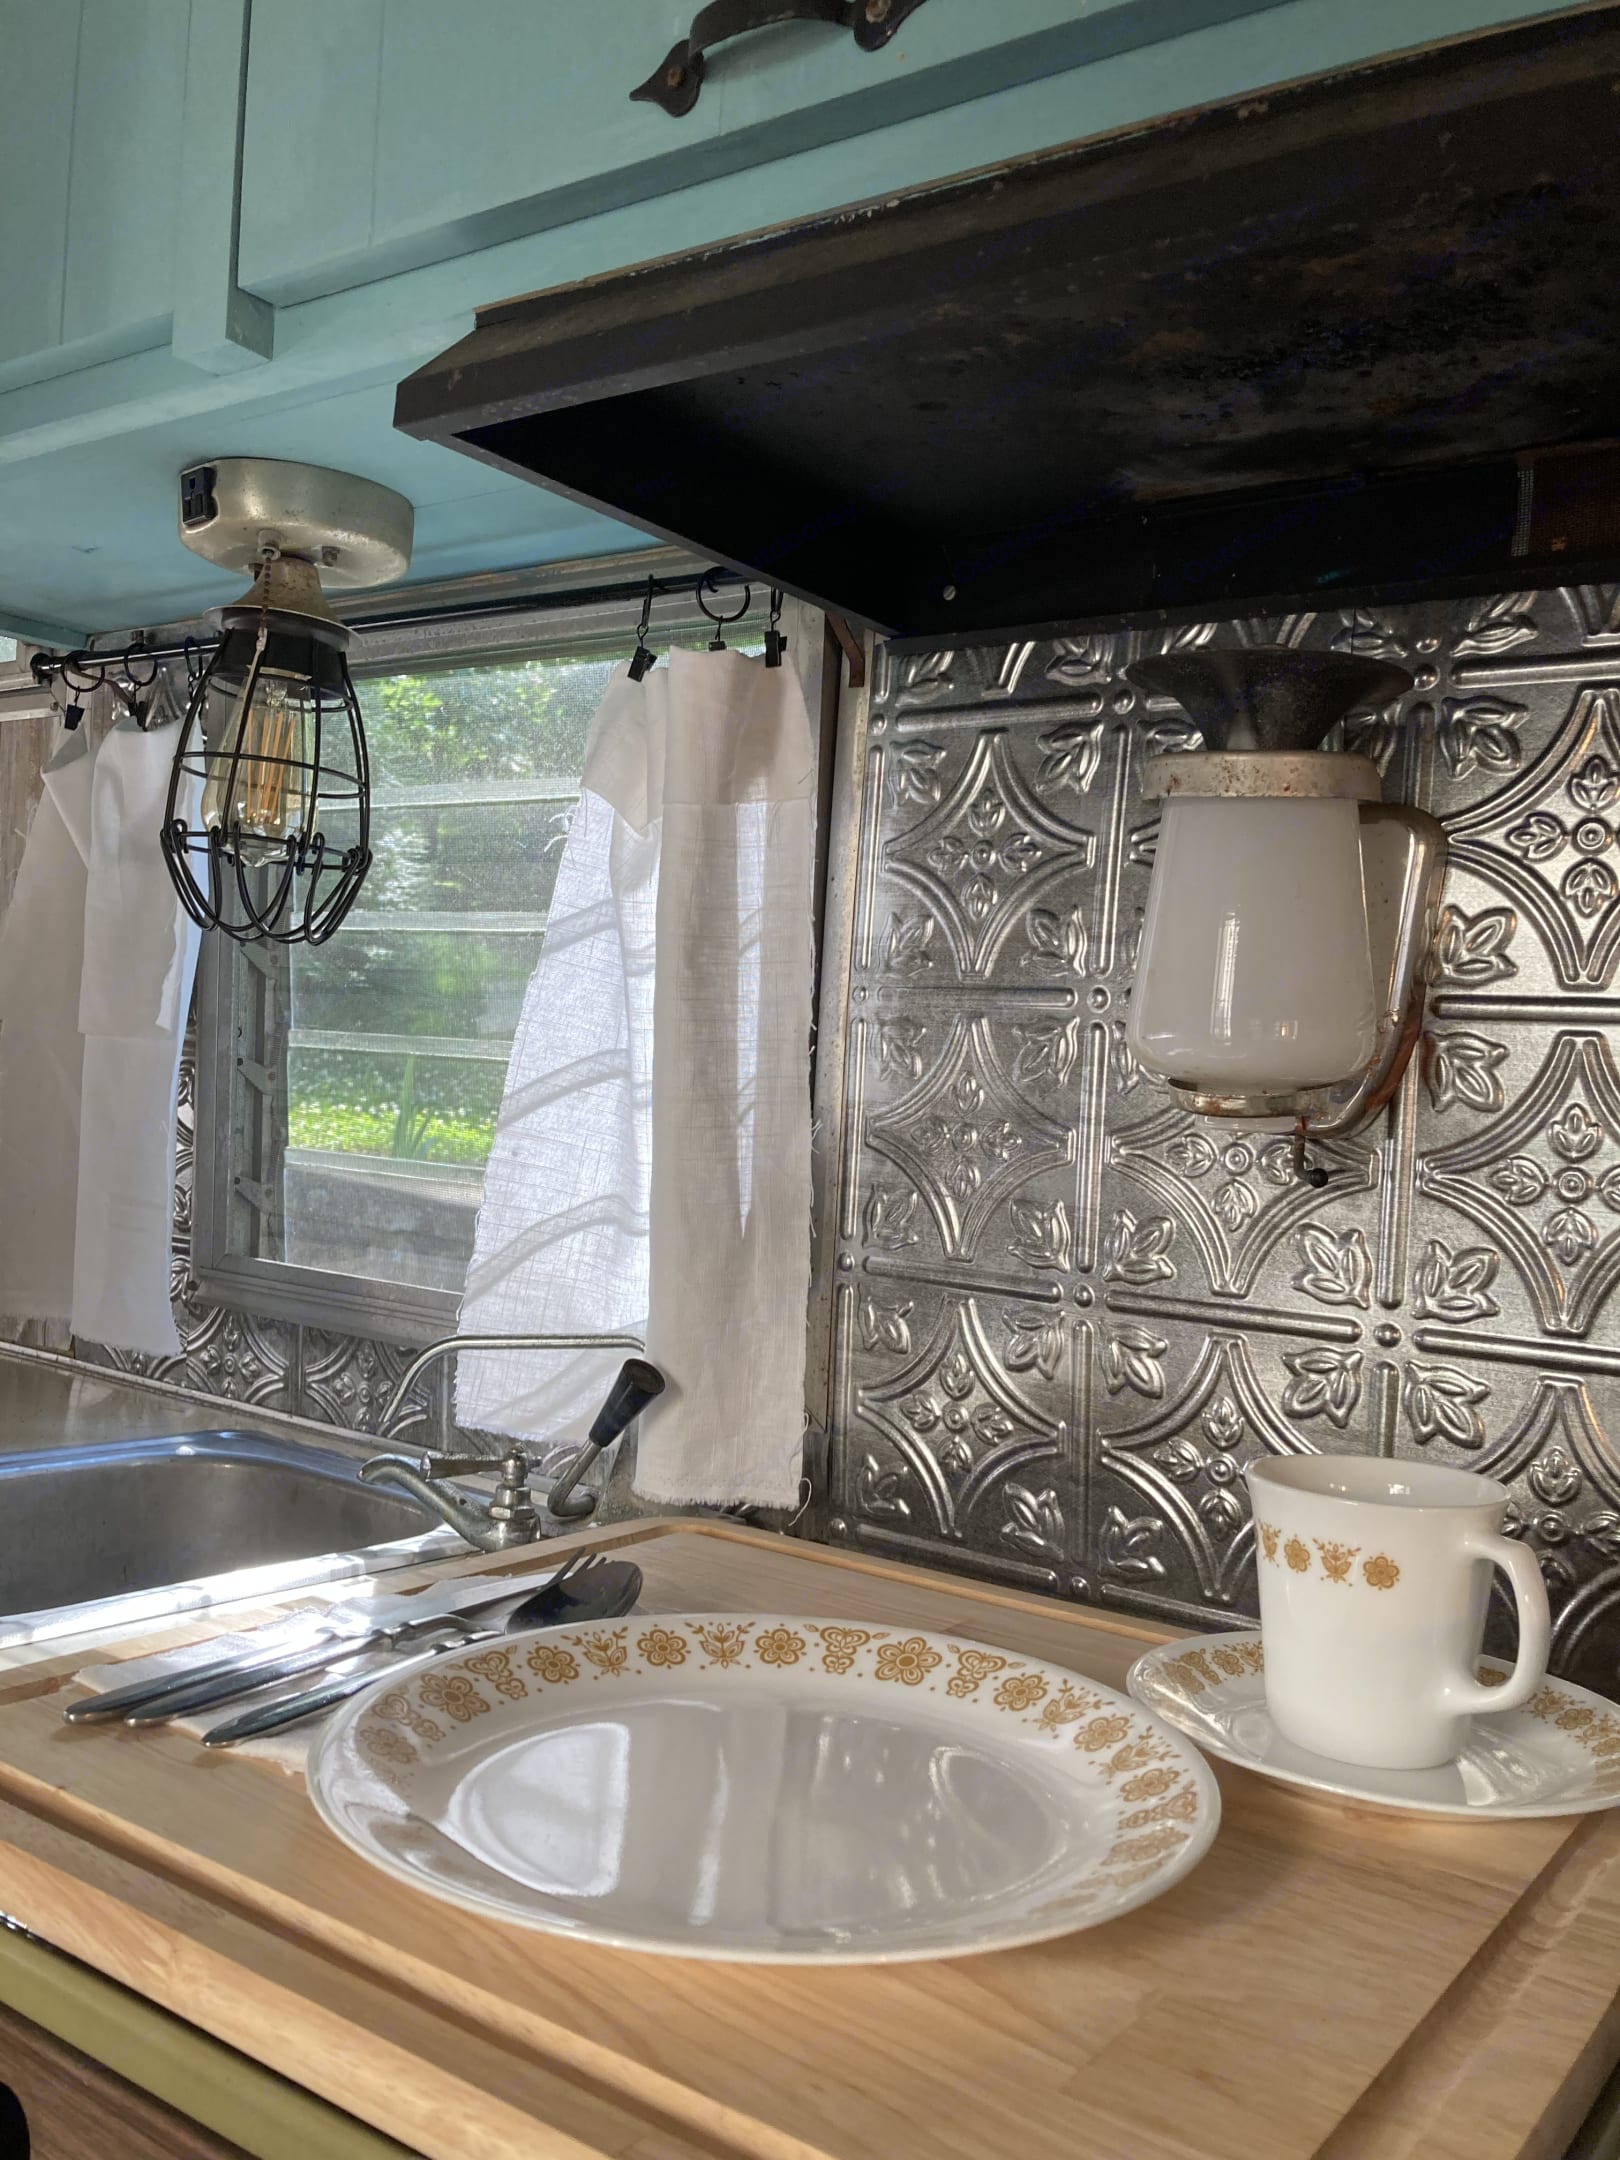 Sink and lots of counter space for food prep. Shasta Airflyte 1968